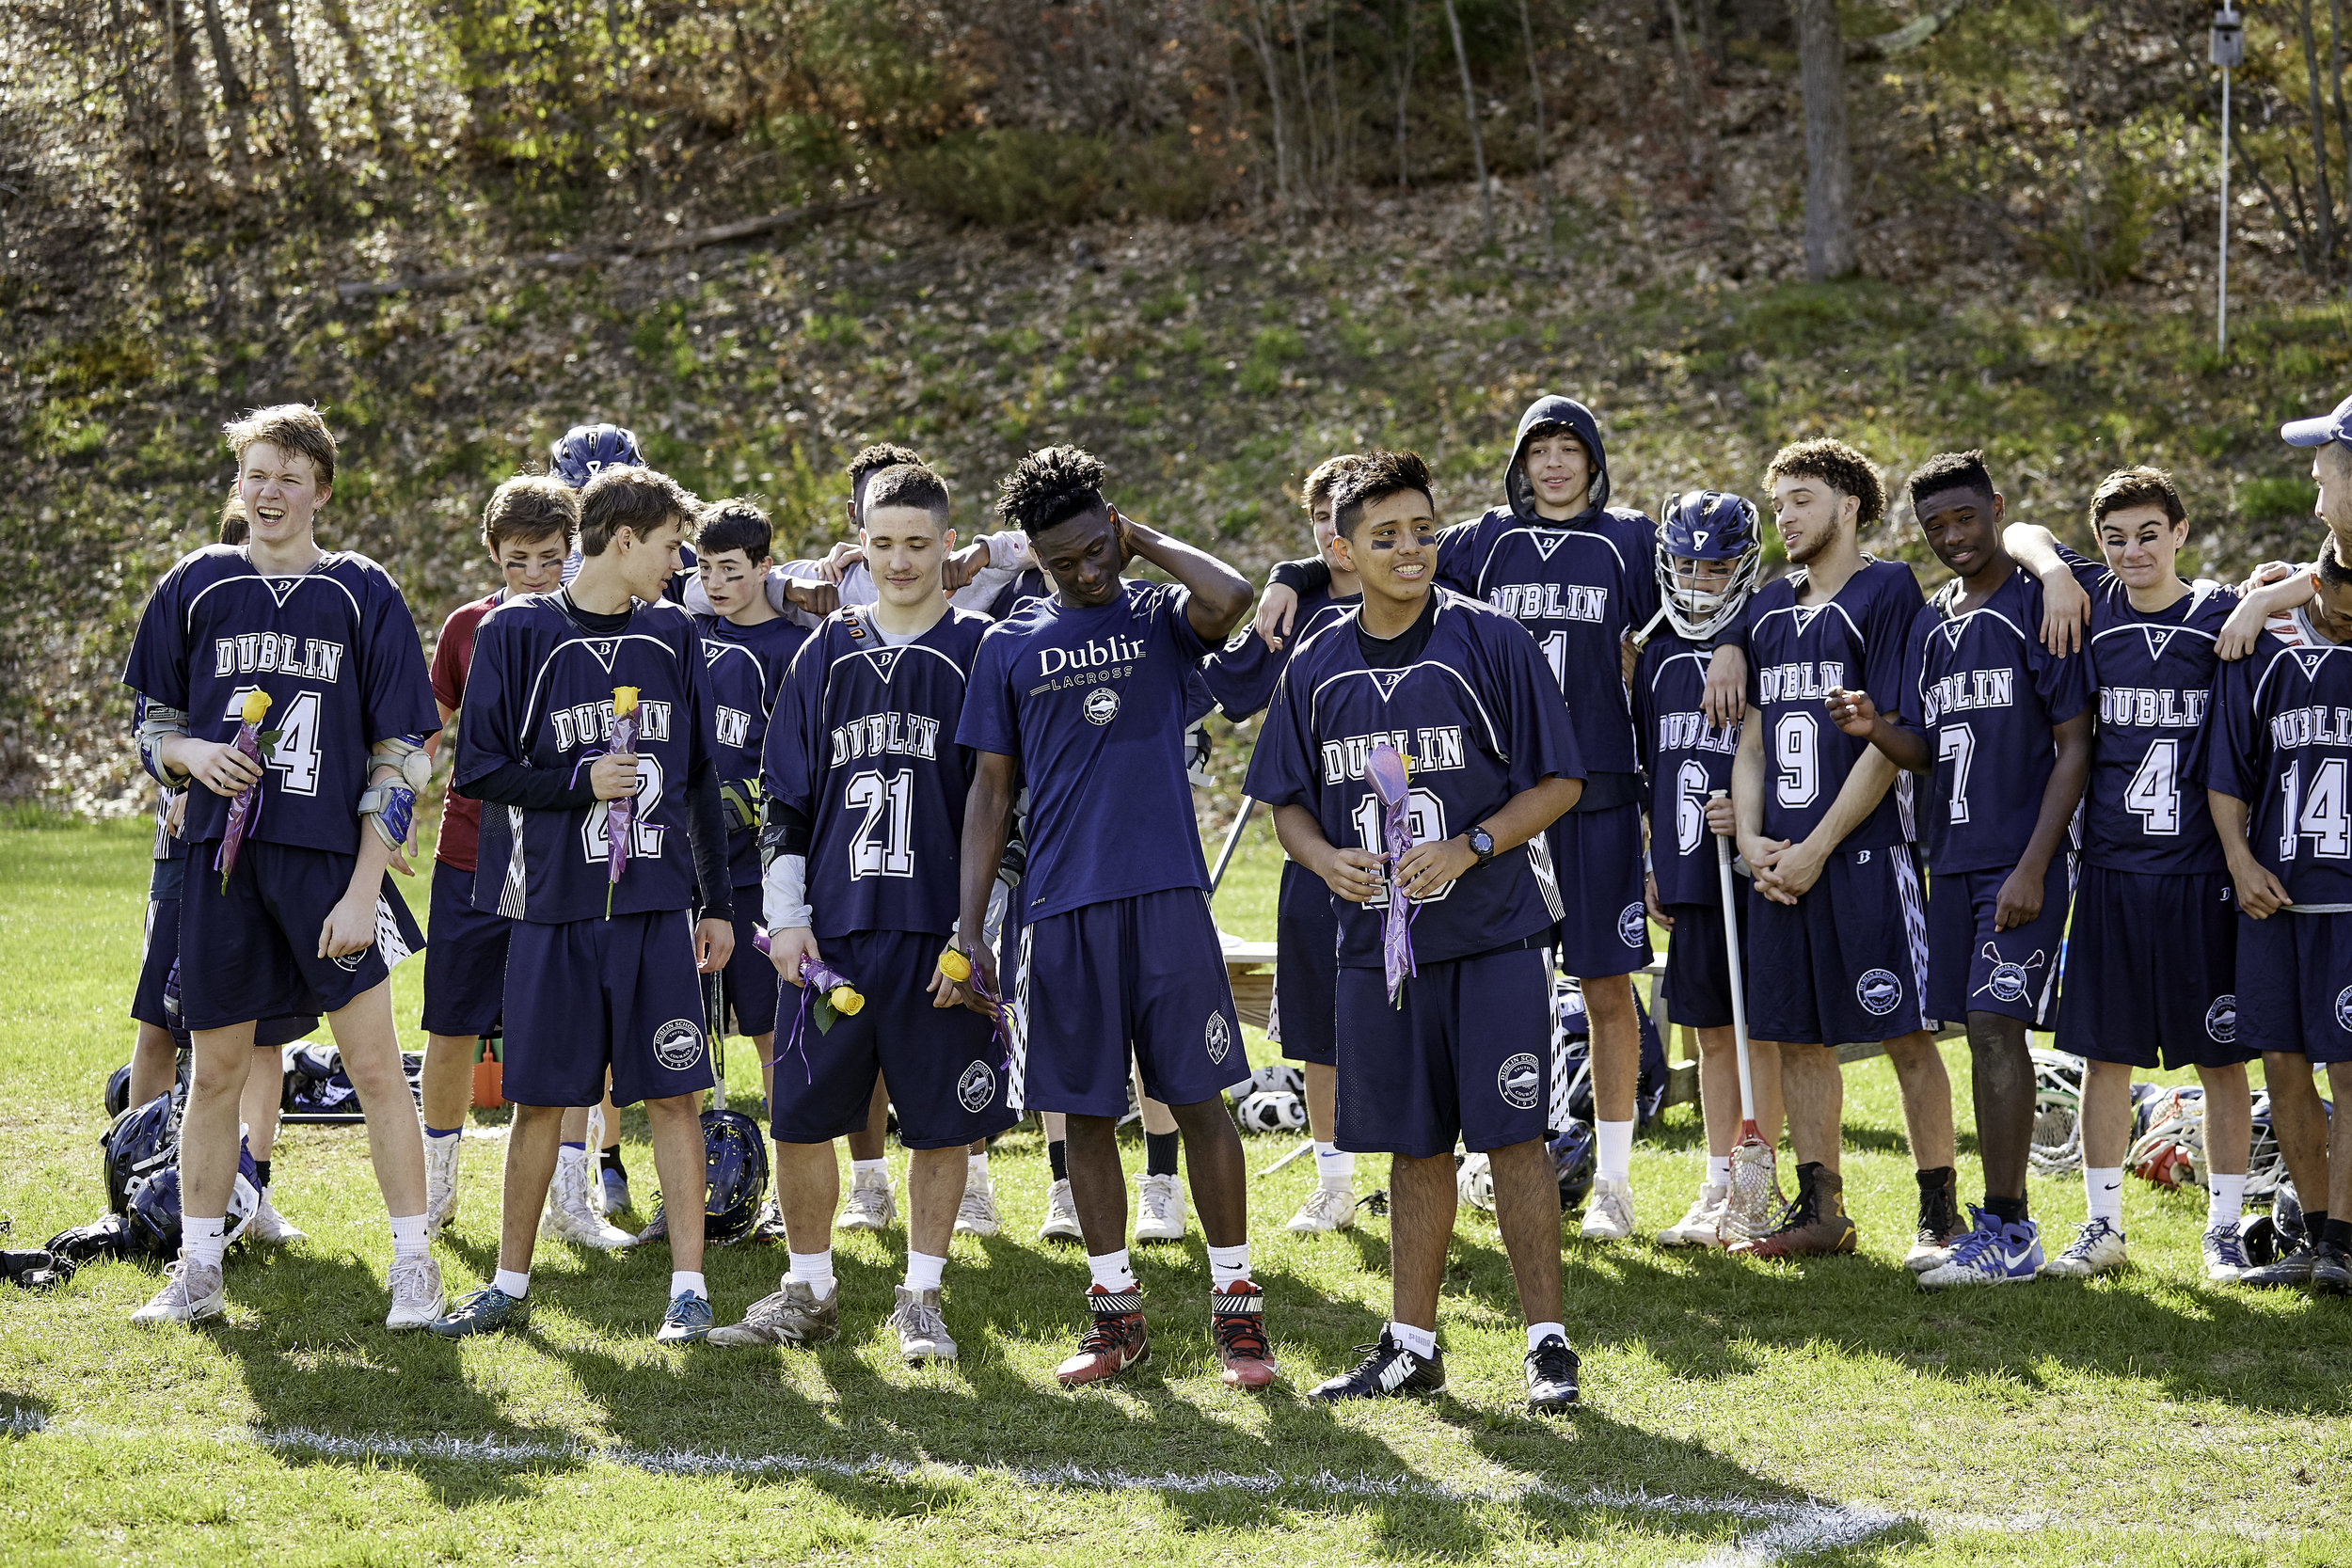 Boys Lax vs Northfield Mount Hermon JV - May 15 2019 - 0076.jpg